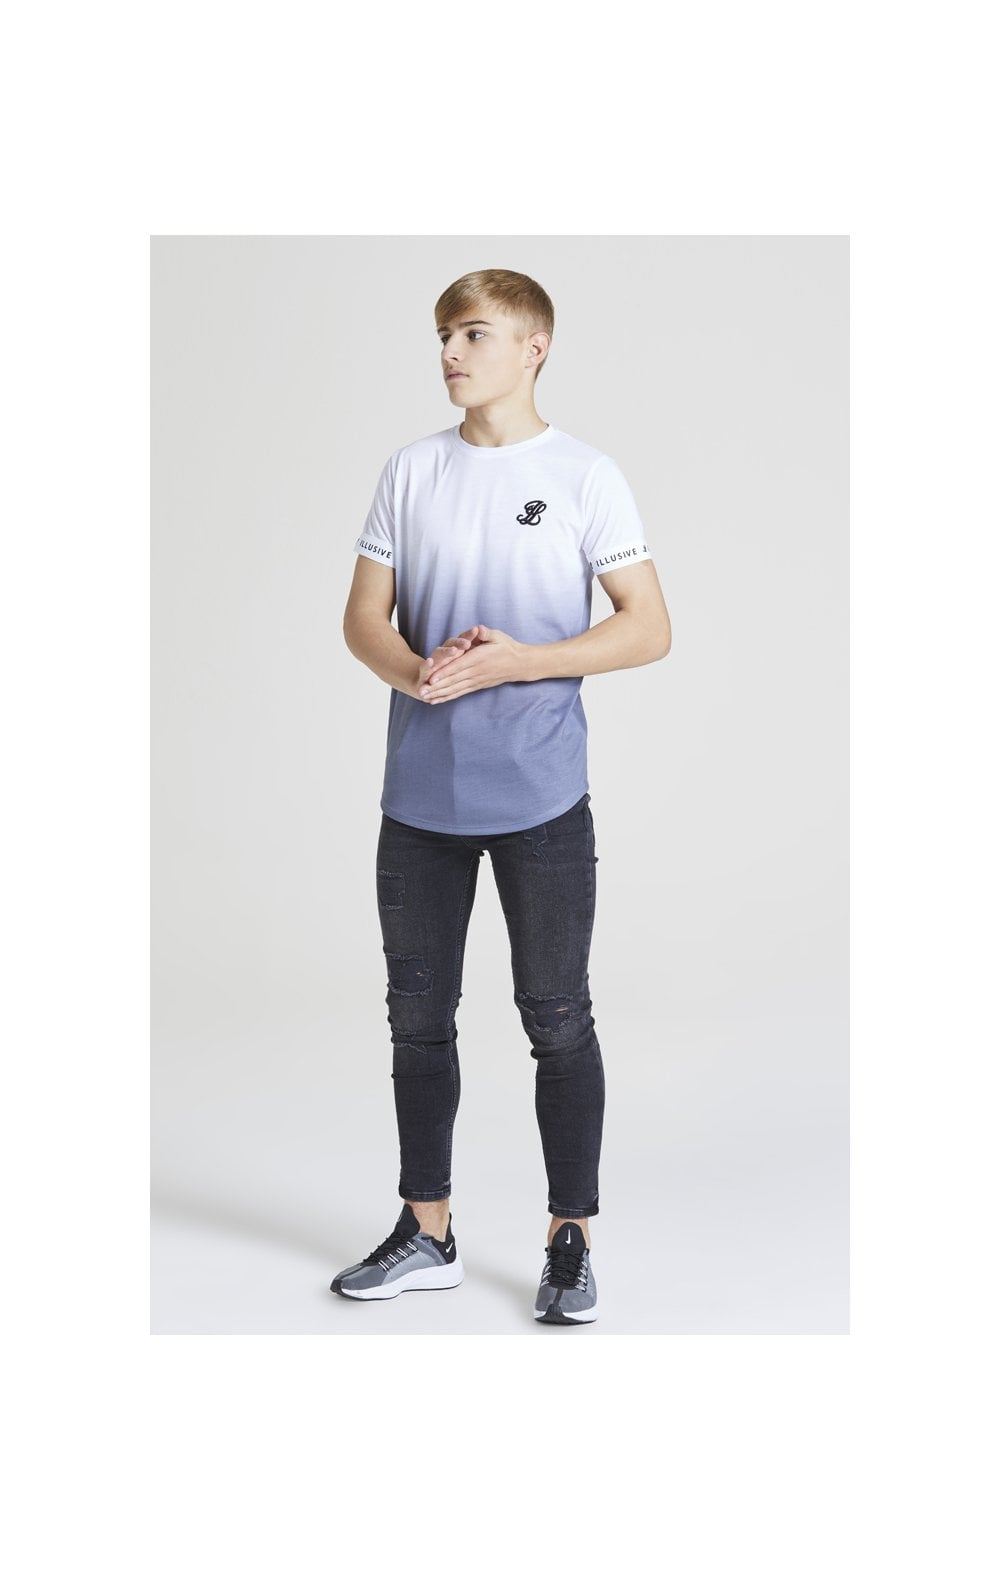 Load image into Gallery viewer, Illusive London Fade Tech Tee – White & Grey (3)